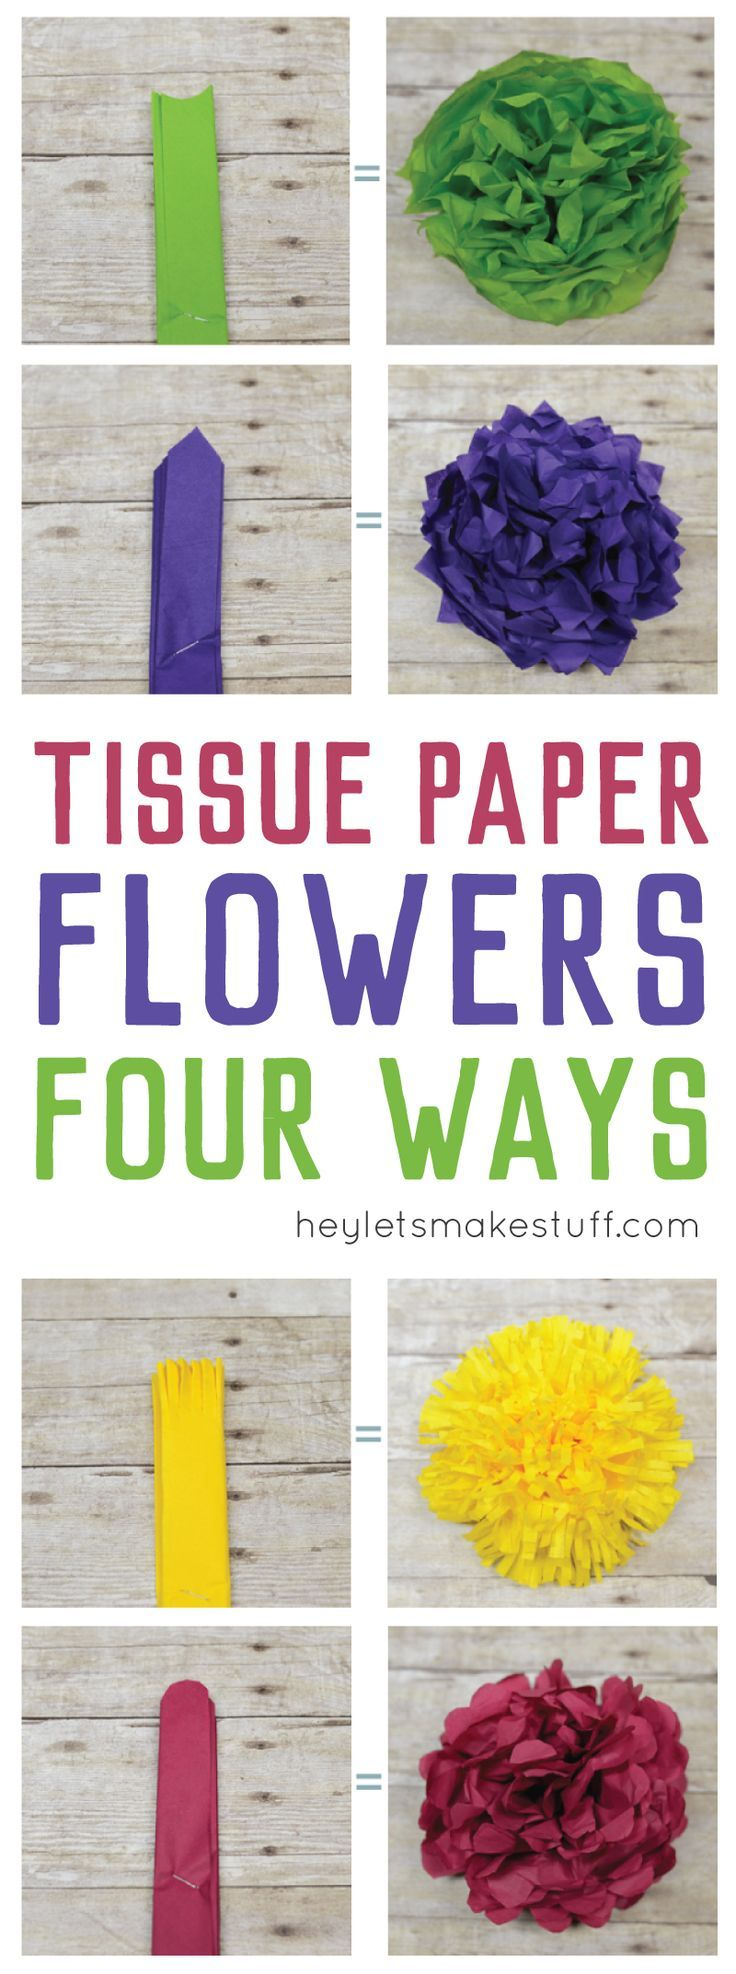 How To Make Tissue Paper Flowers Four Ways Pinterest Budget